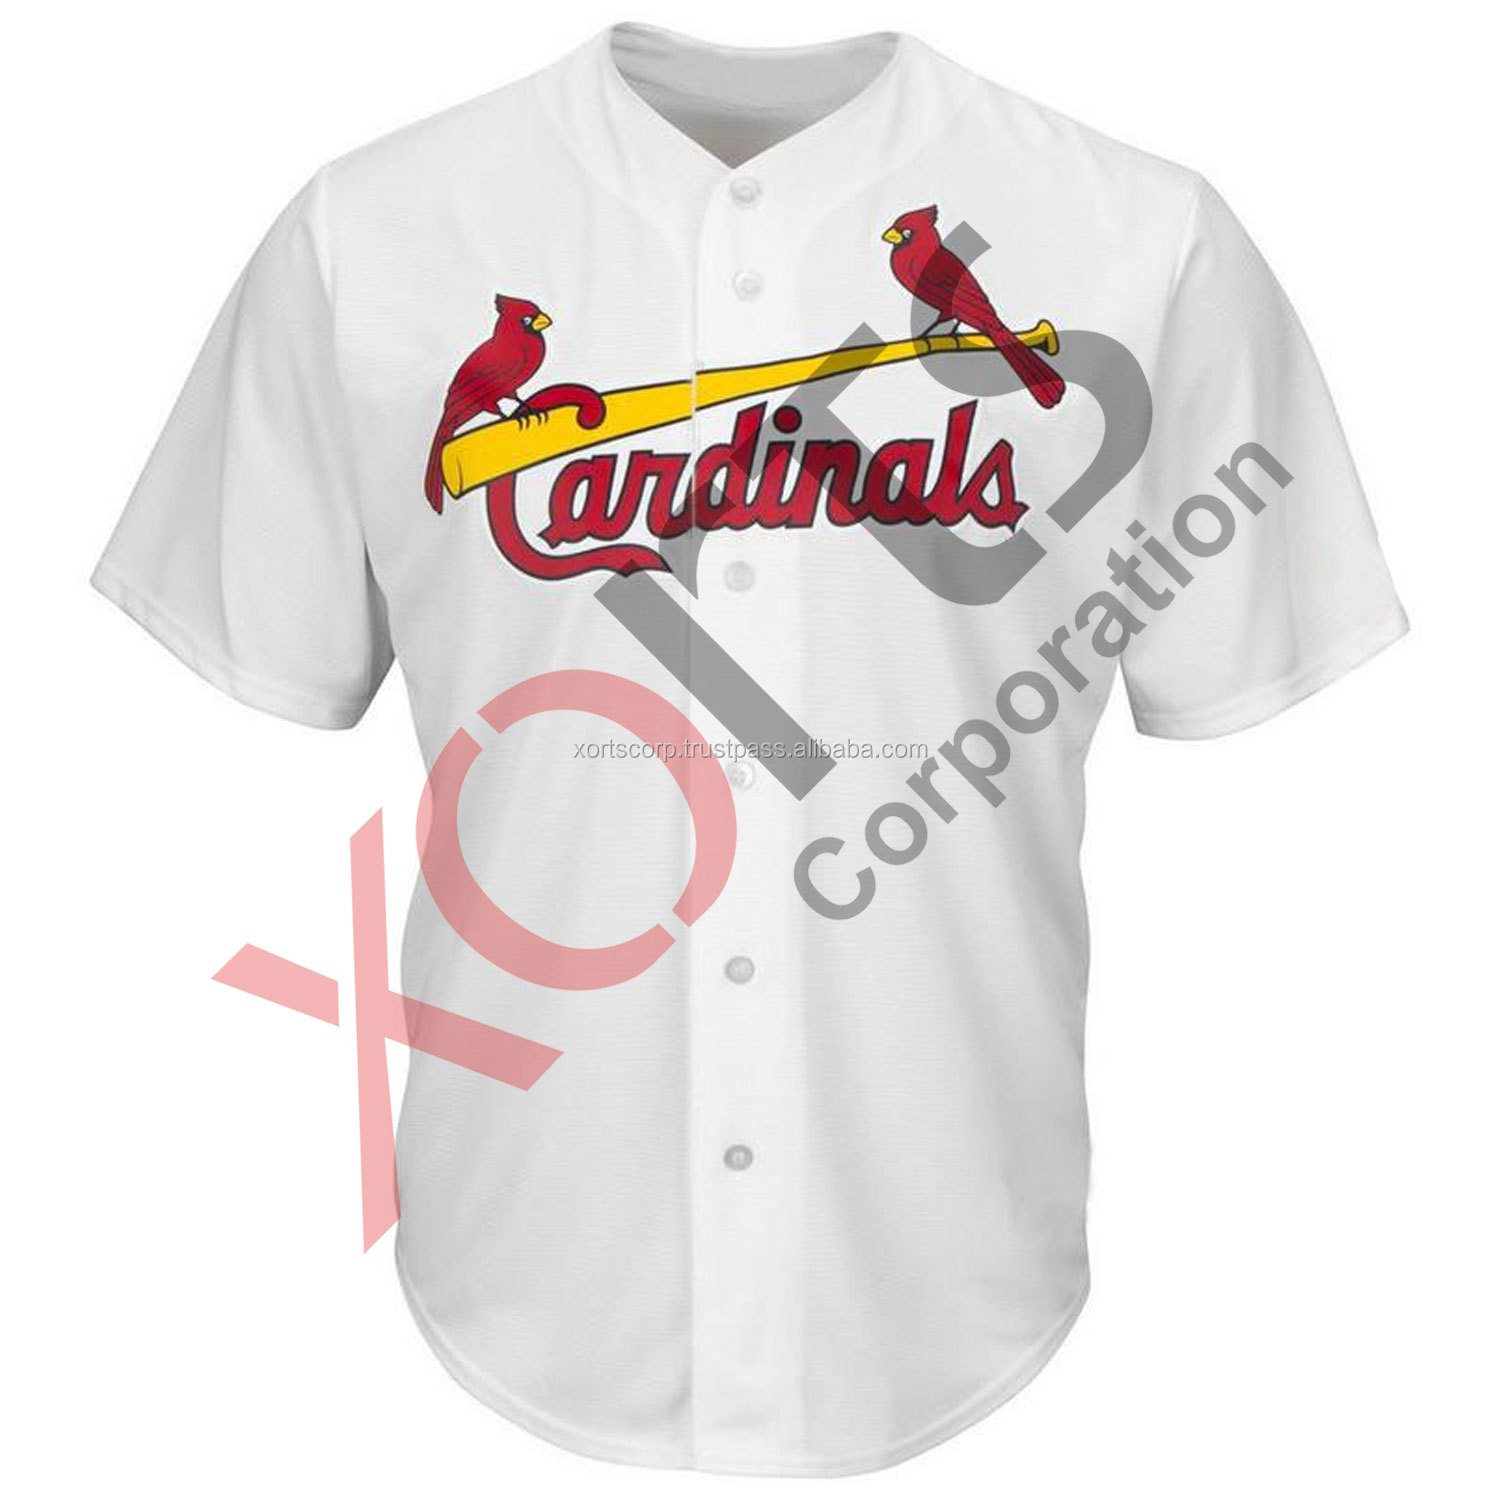 Sublimada Jaquetas De Baseball Bordados Jerseys